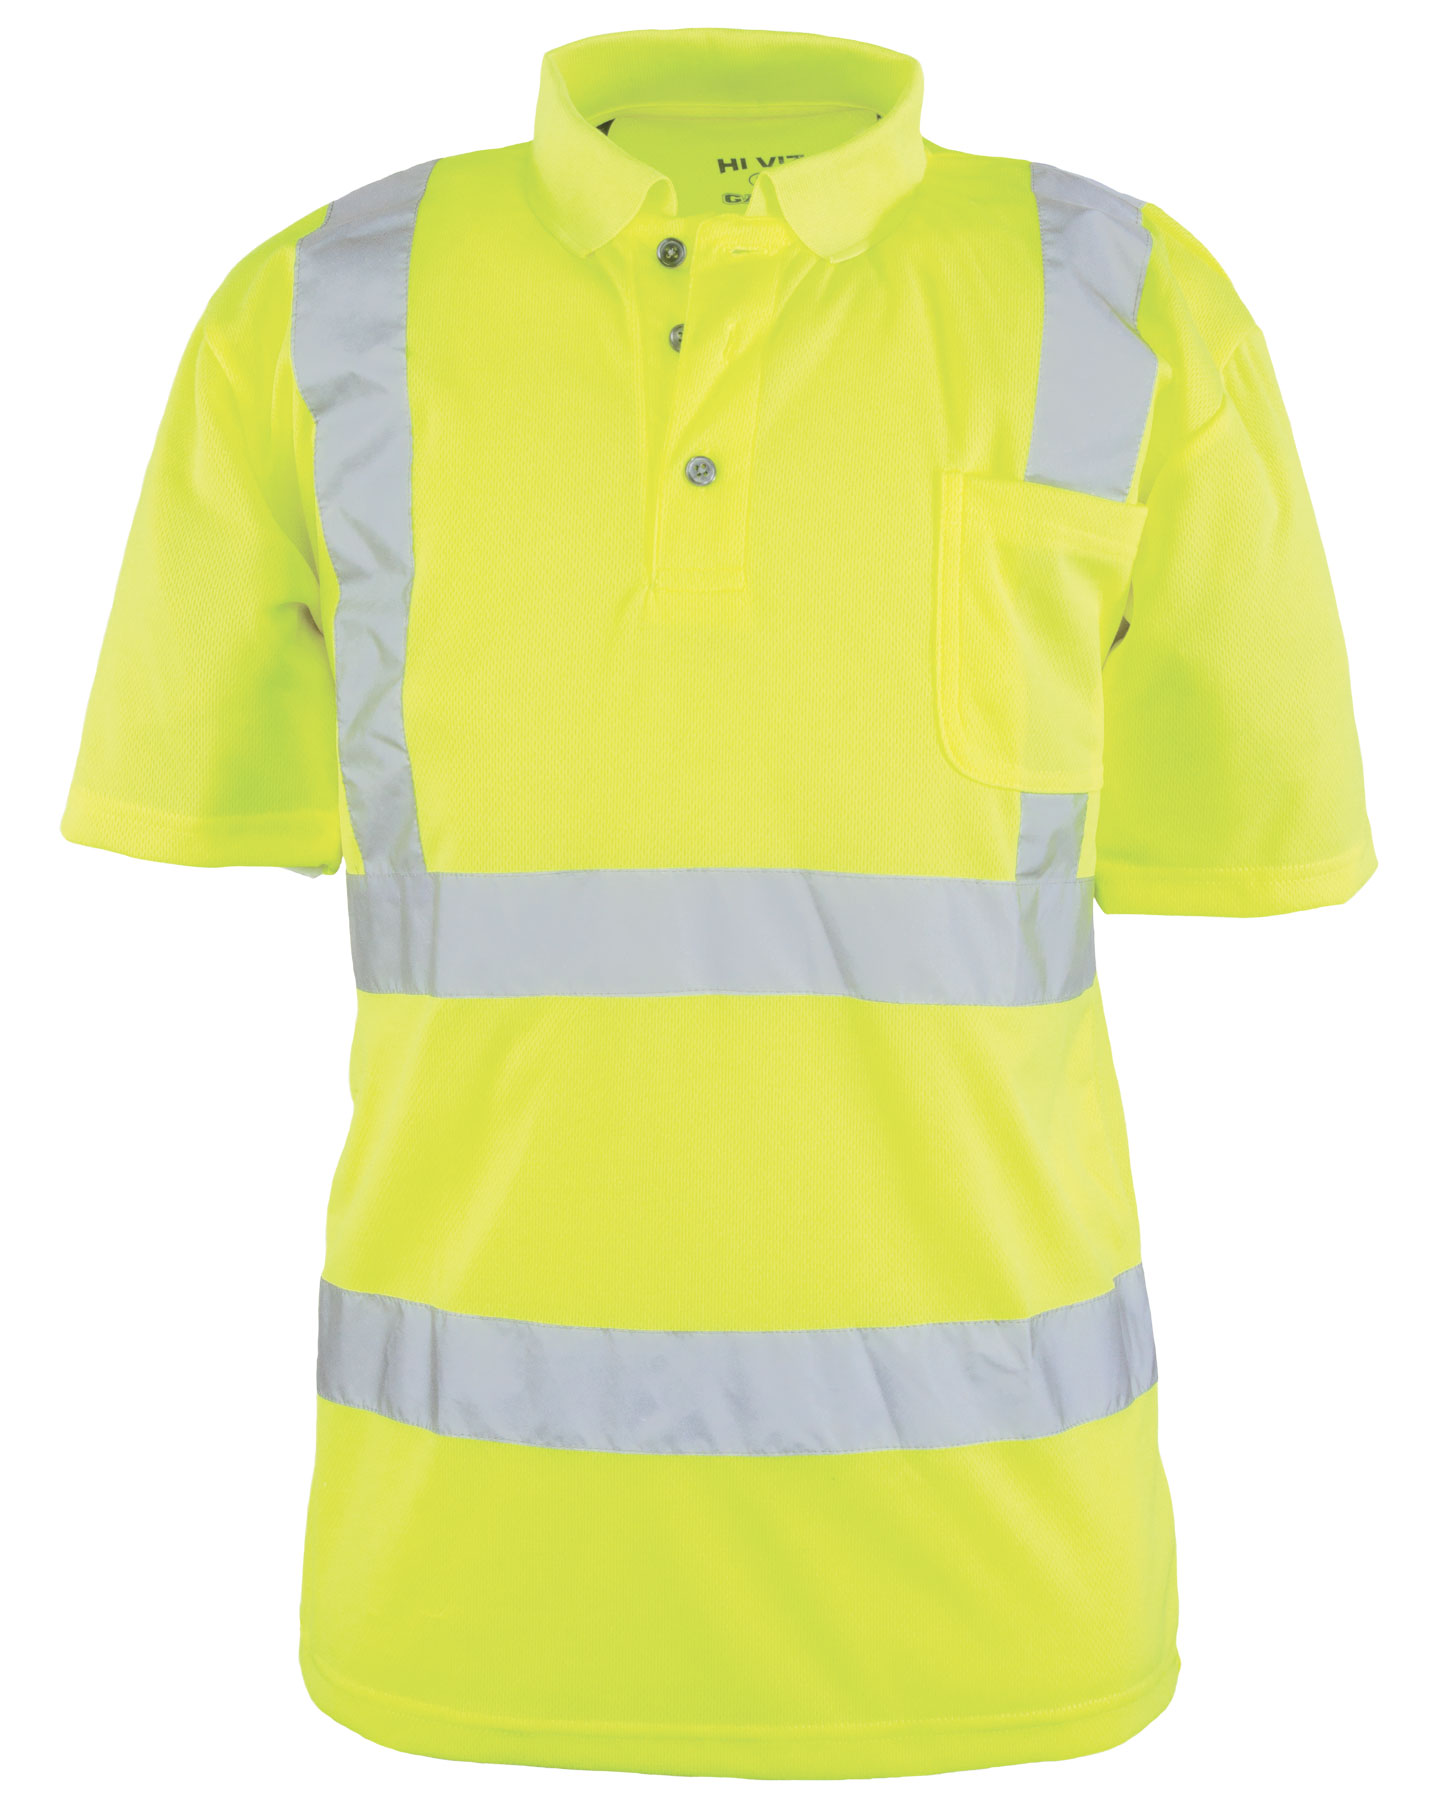 The ANSI/ISEA 107-2004 Class 2  Foreman Polo